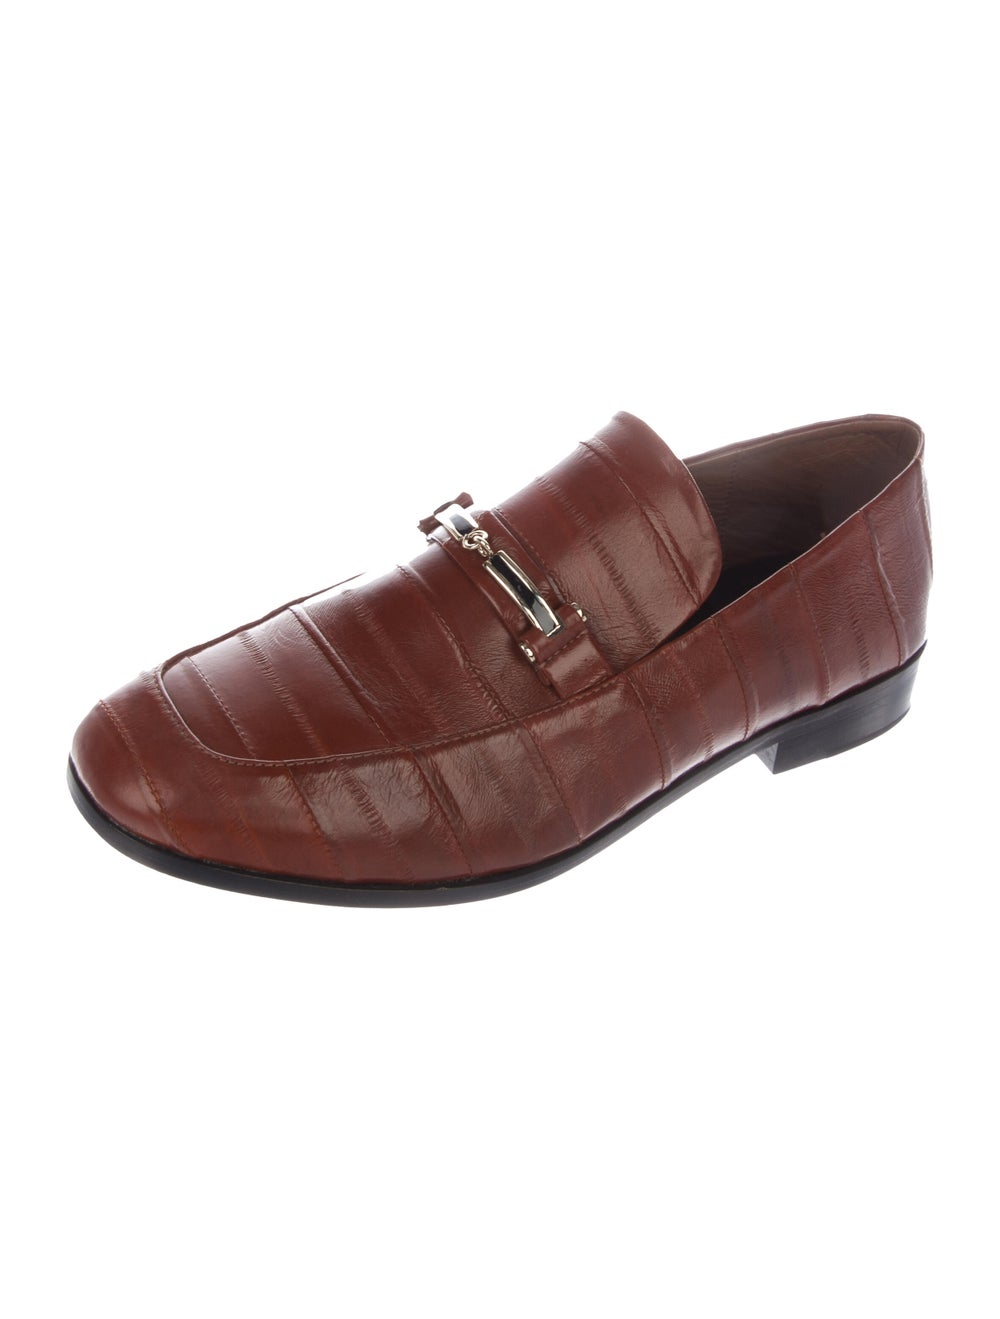 NewbarK Eel Skin Loafers Brown - image 2